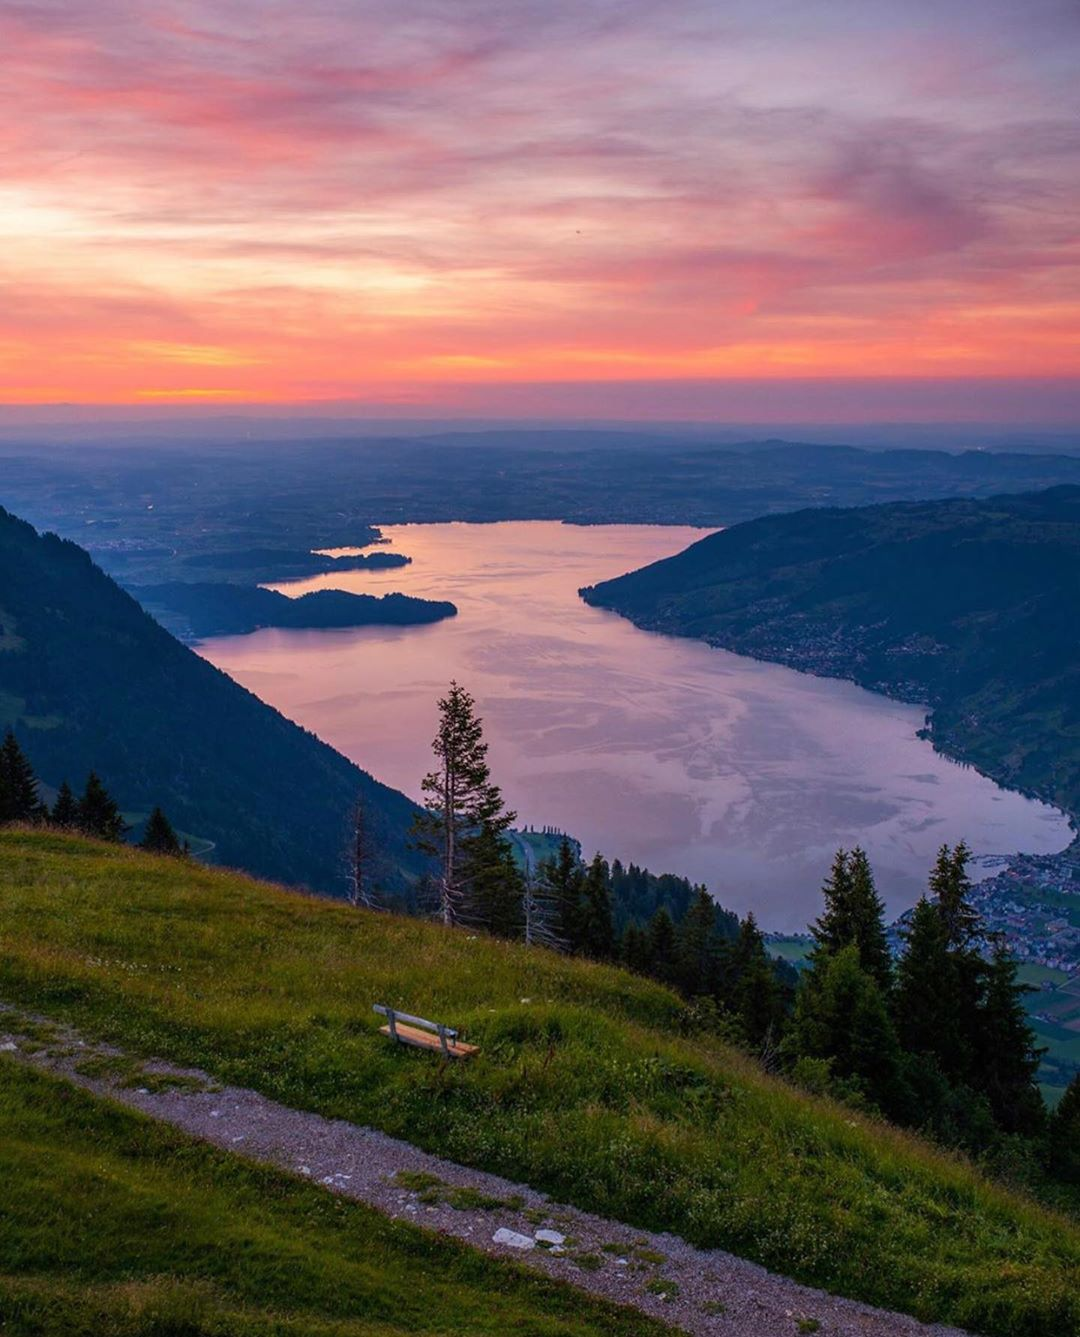 Sunset over Mount Rigi with Lucerne Lake